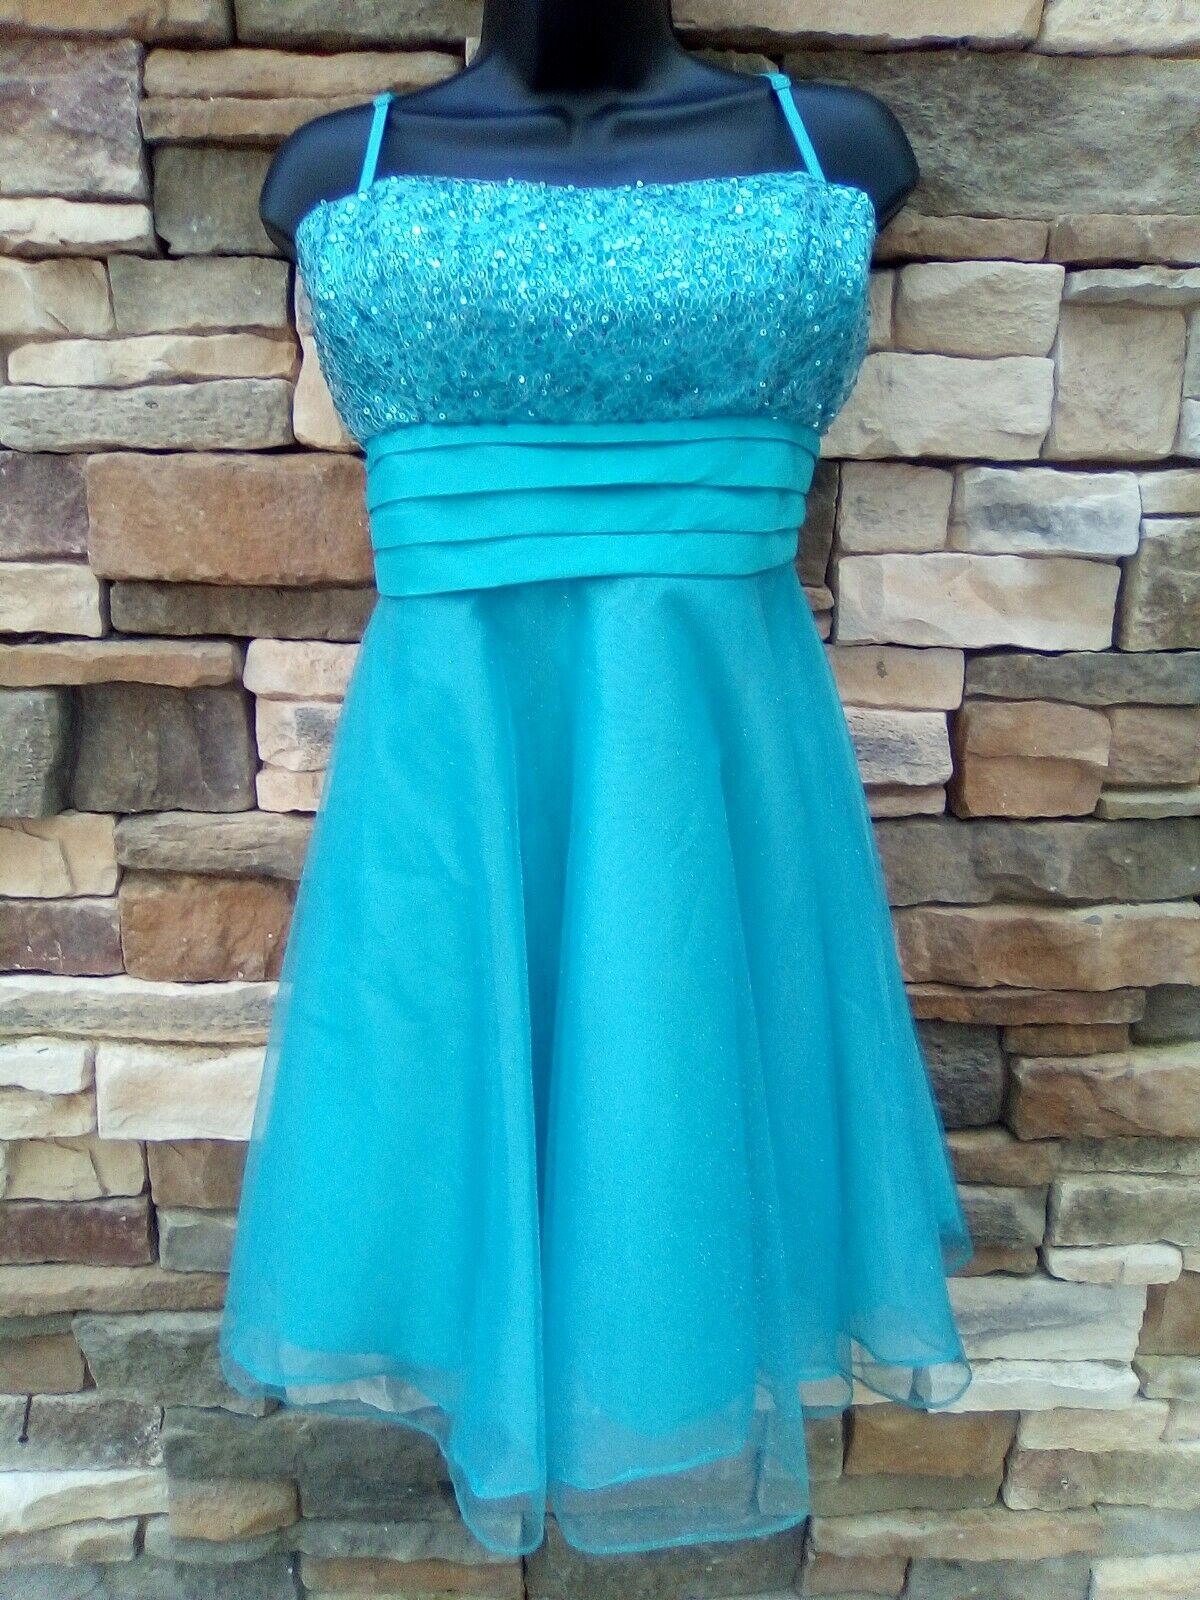 NWT Dancing Queen Med. Blue Short Prom Dress w/ Adjustable Spaghetti Straps